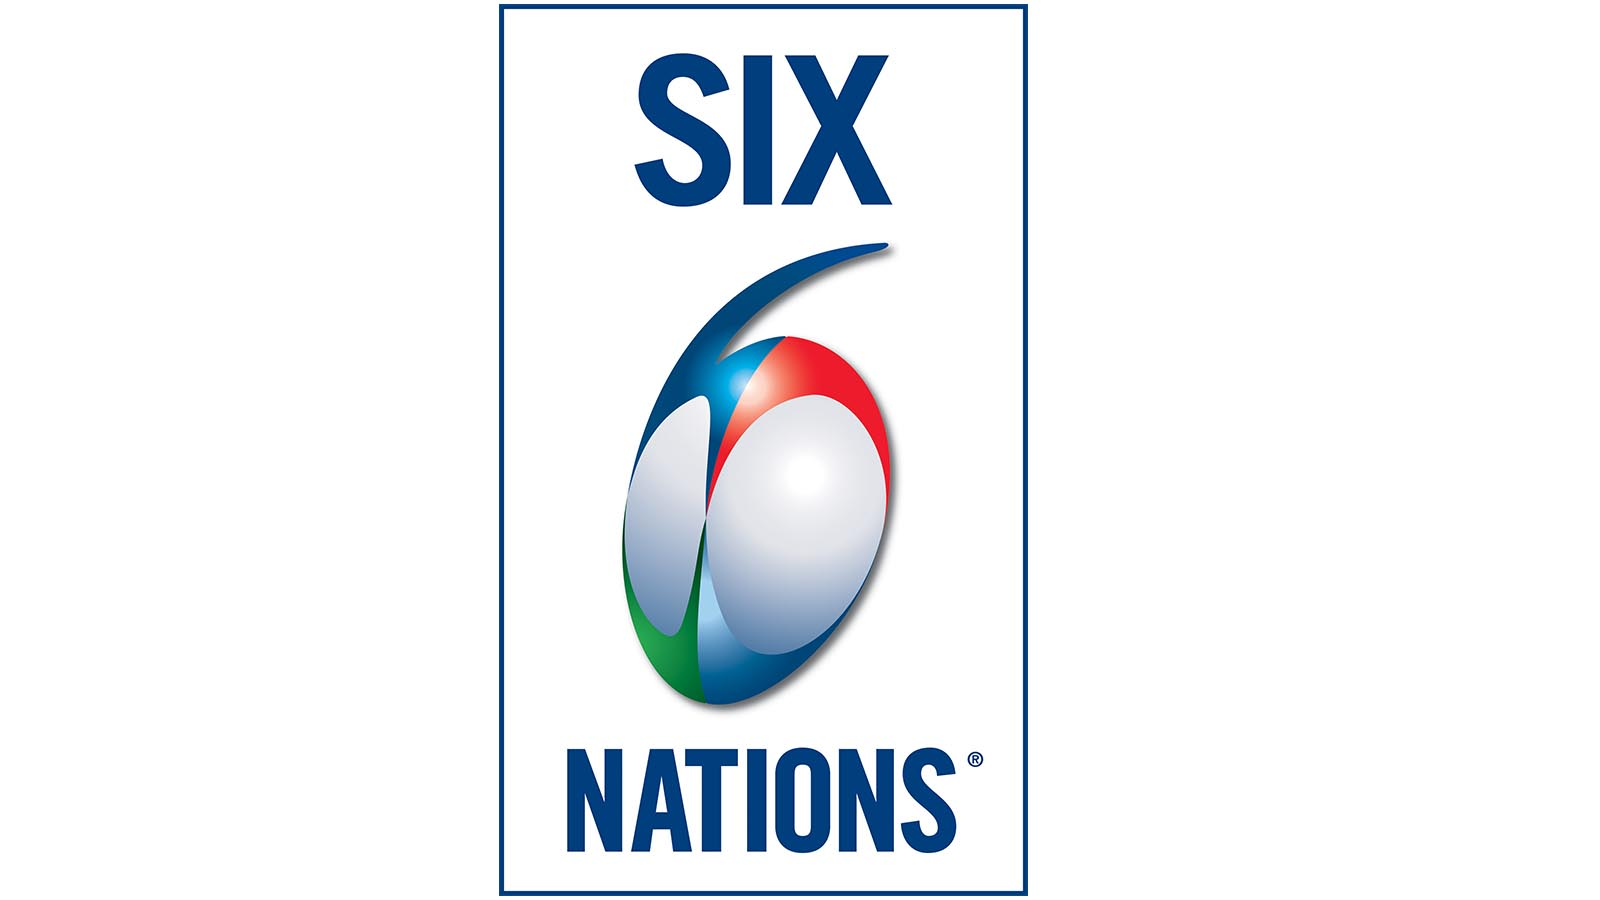 Six Nations Rugby nomina un nuovo Direttore Generale